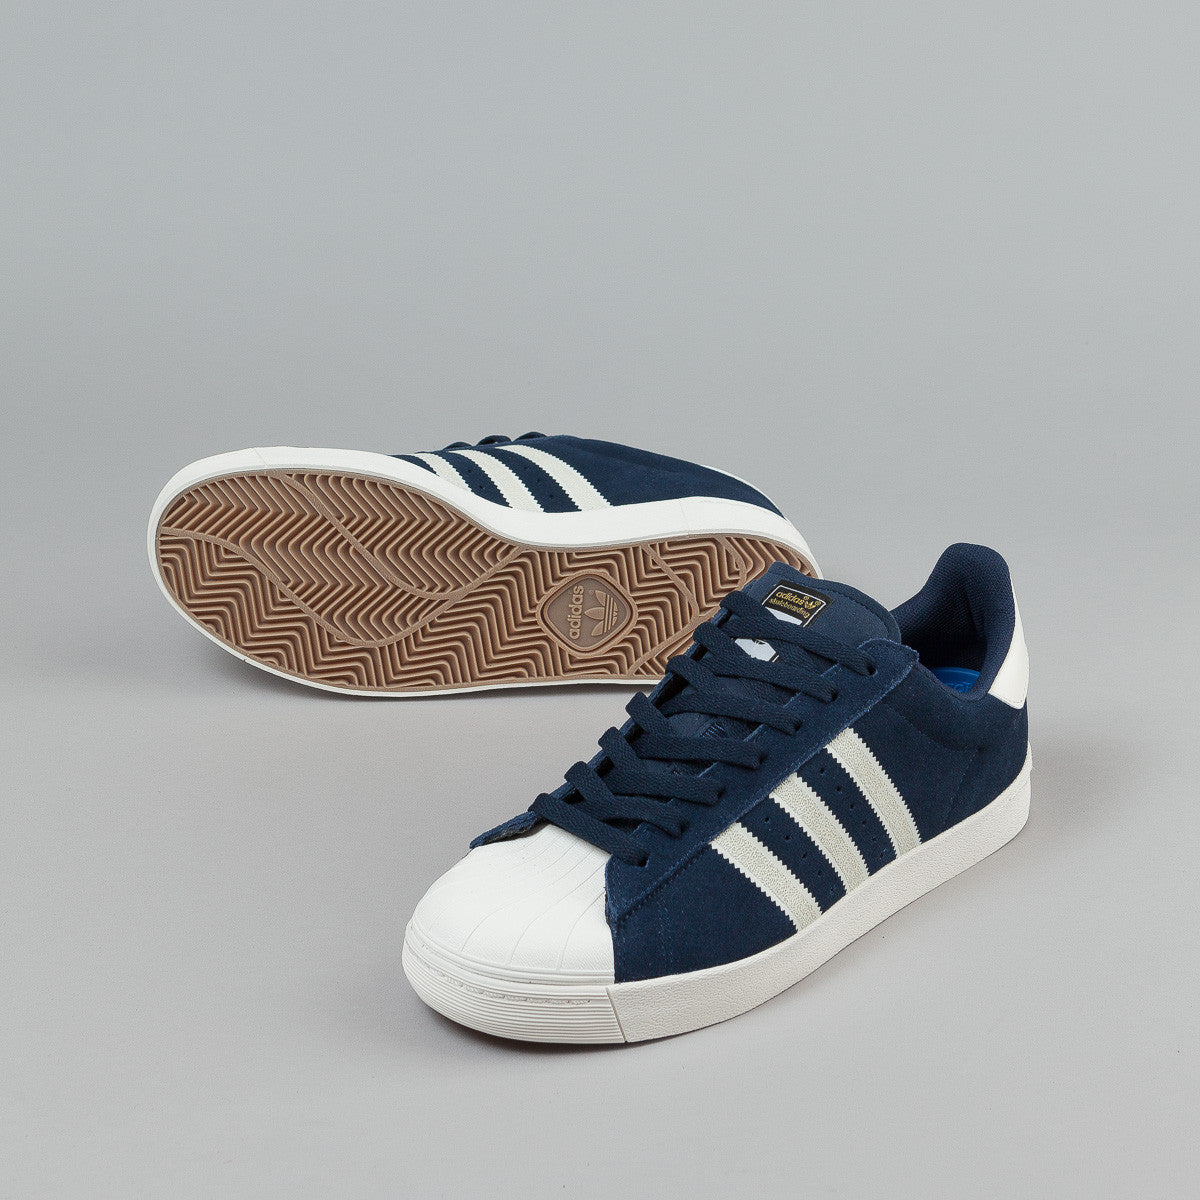 Adidas Superstar Vulc Adv Shoe Backcountry